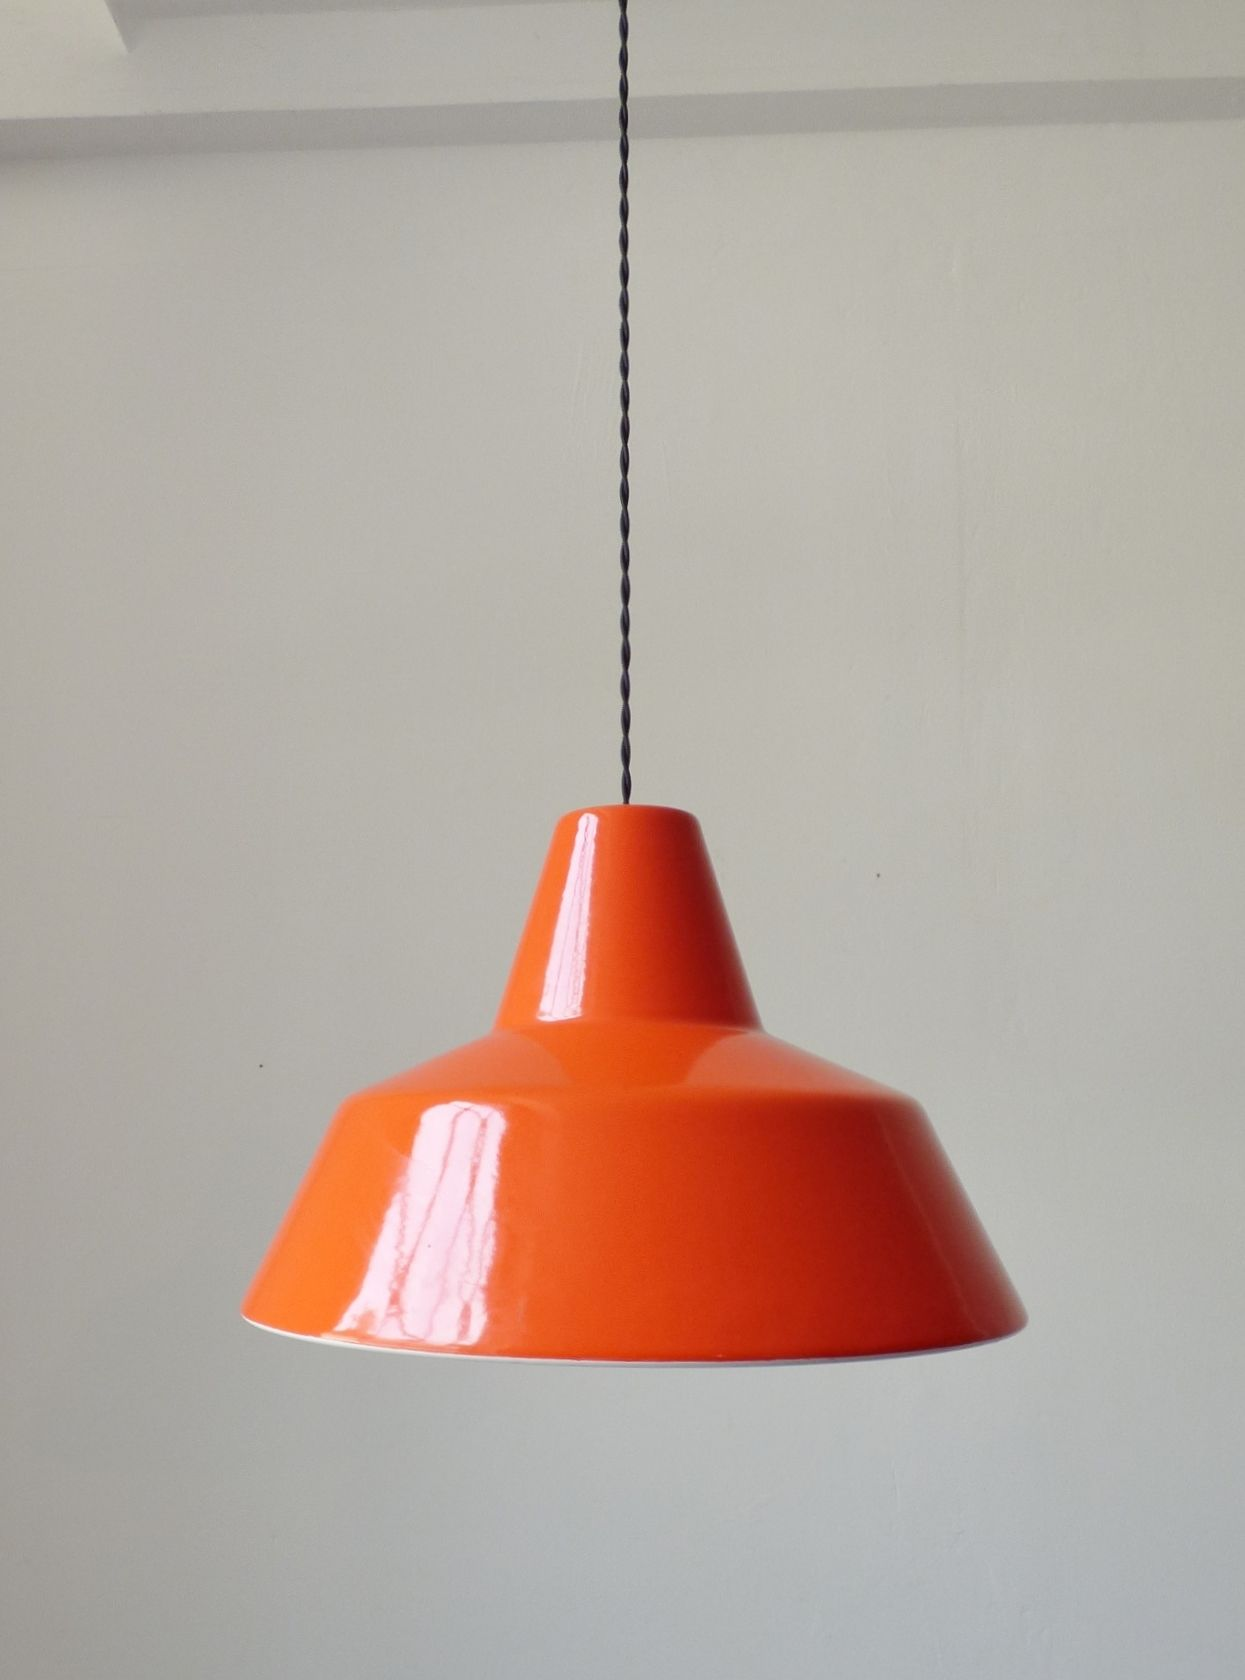 1960s Orange Louis Poulsen Enamel Pendant Lamp Orange Pendant